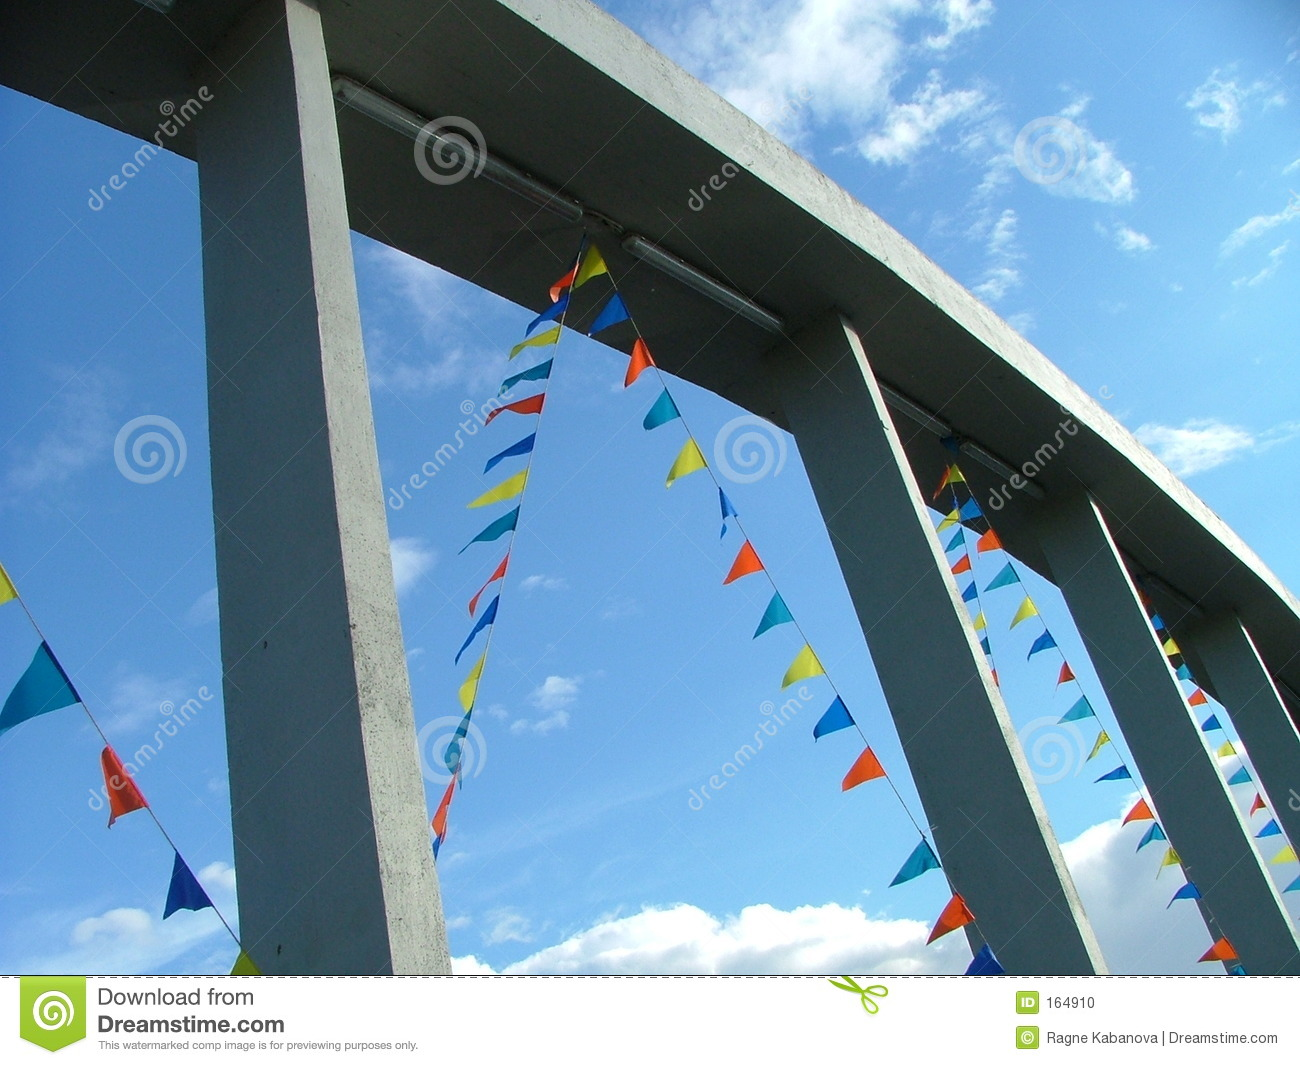 Flags on the bridge frame